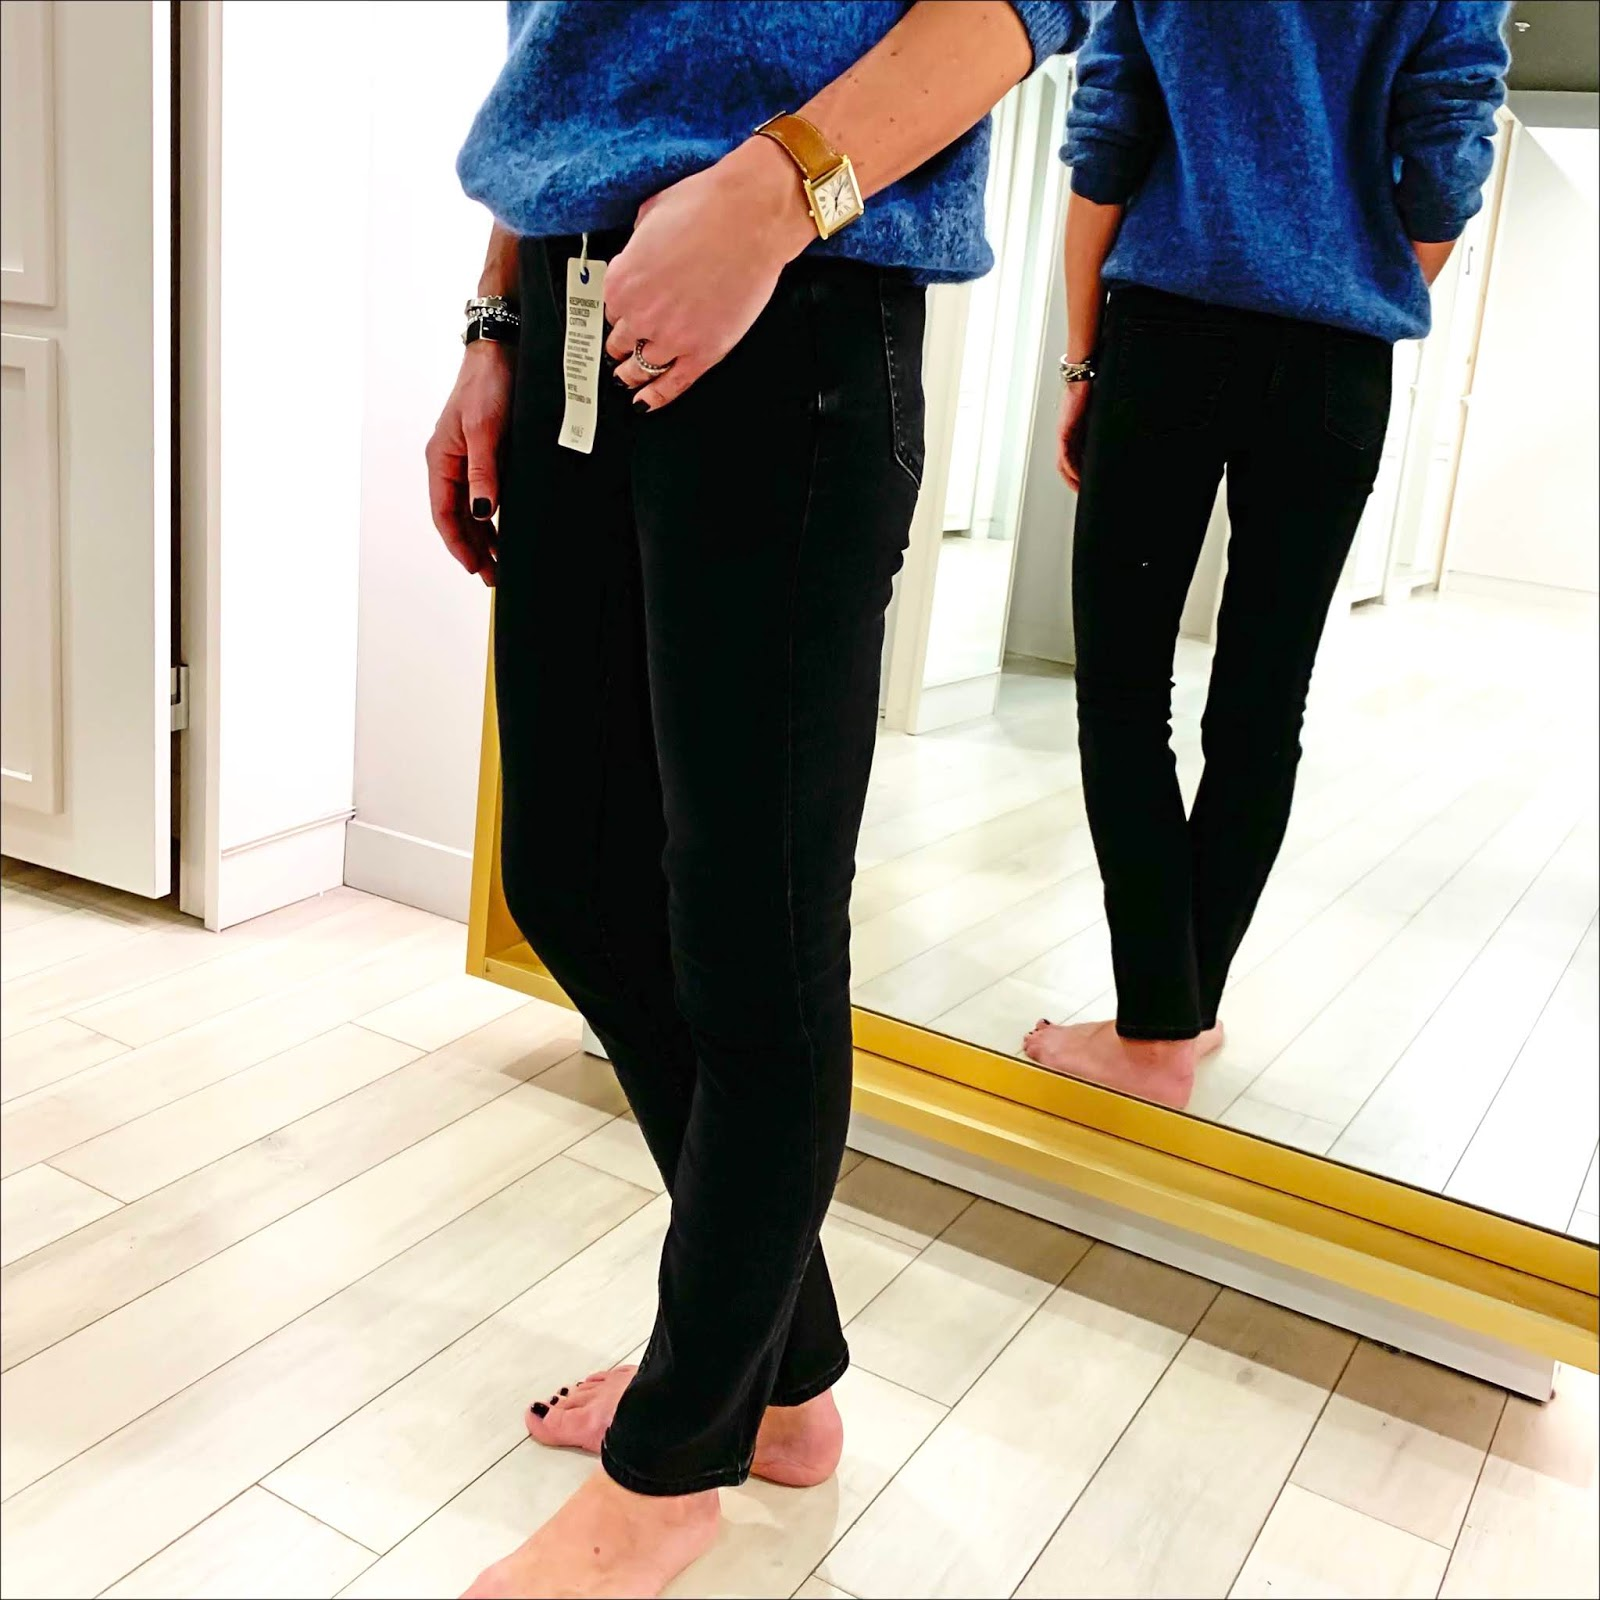 my midlife fashion, marks and spencer 360 contour mid rise slim leg jeans